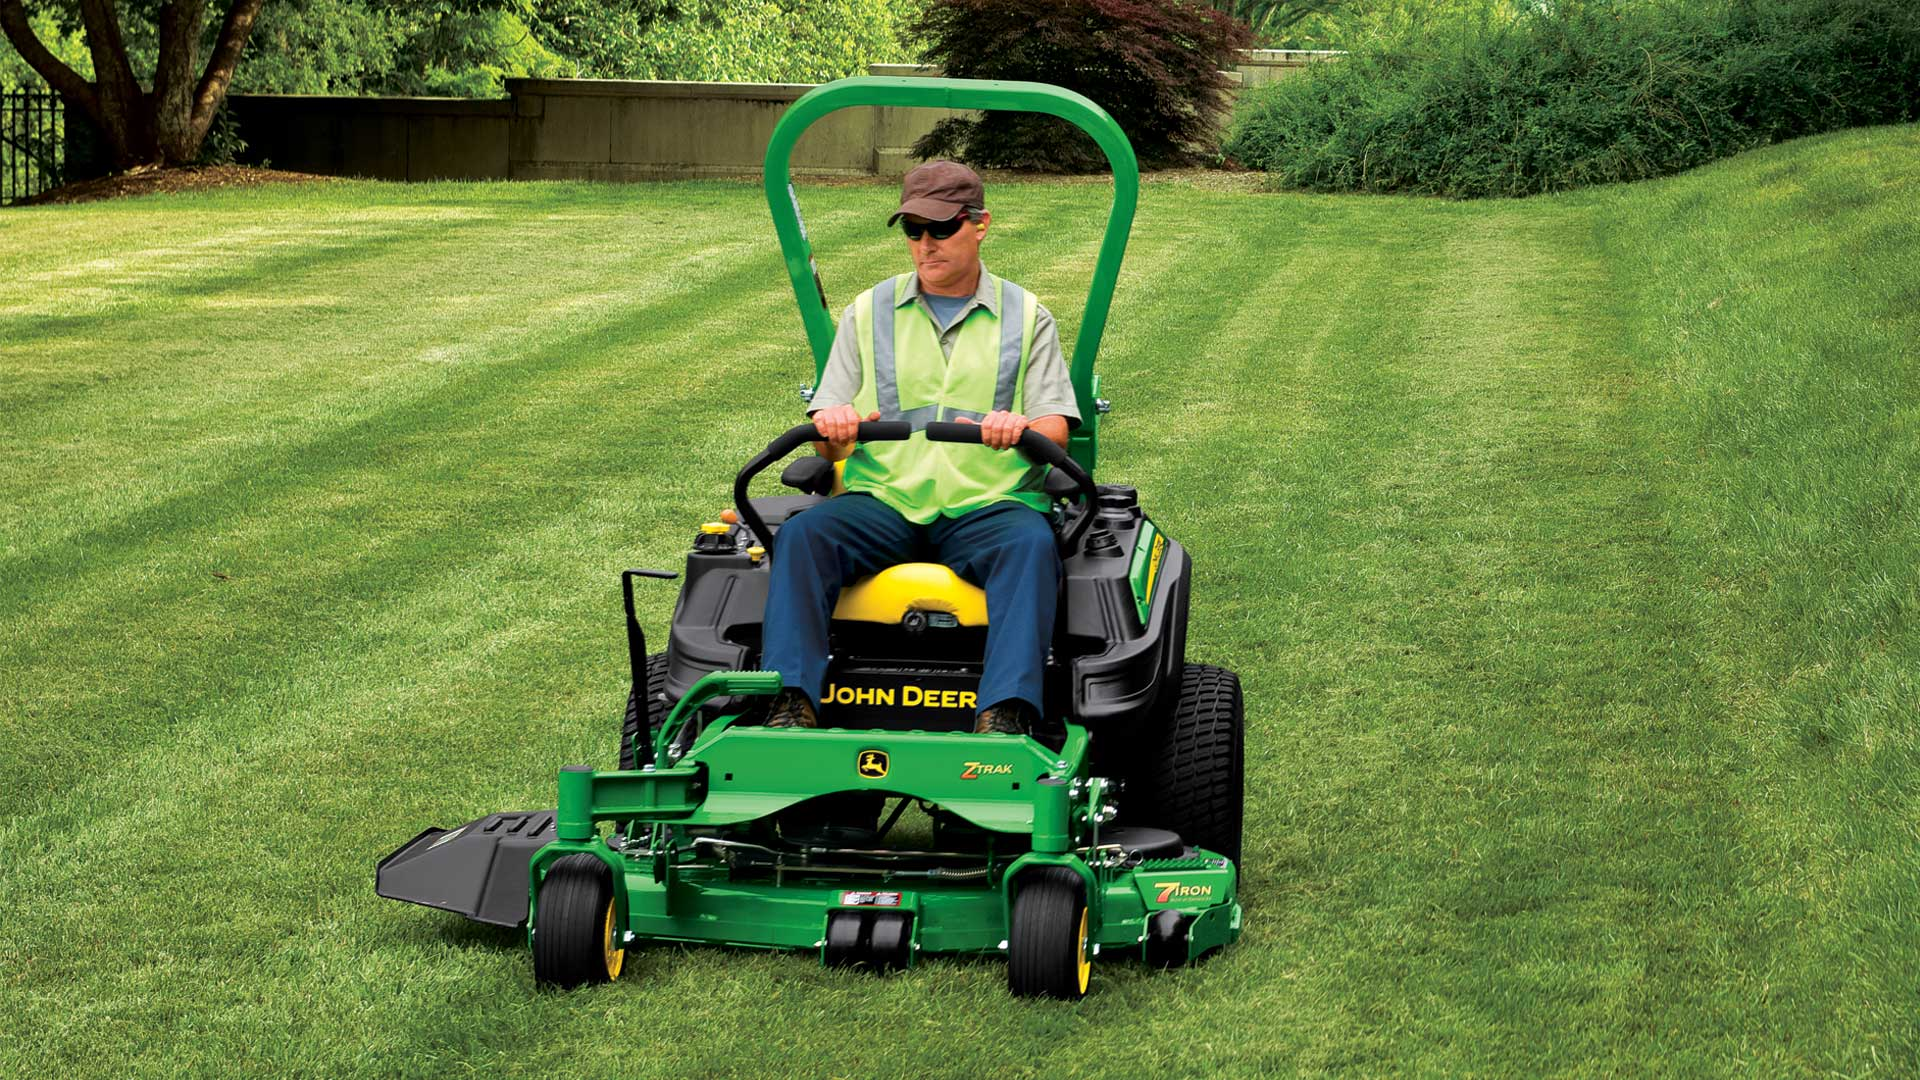 Commercial Mowers John Deere Us